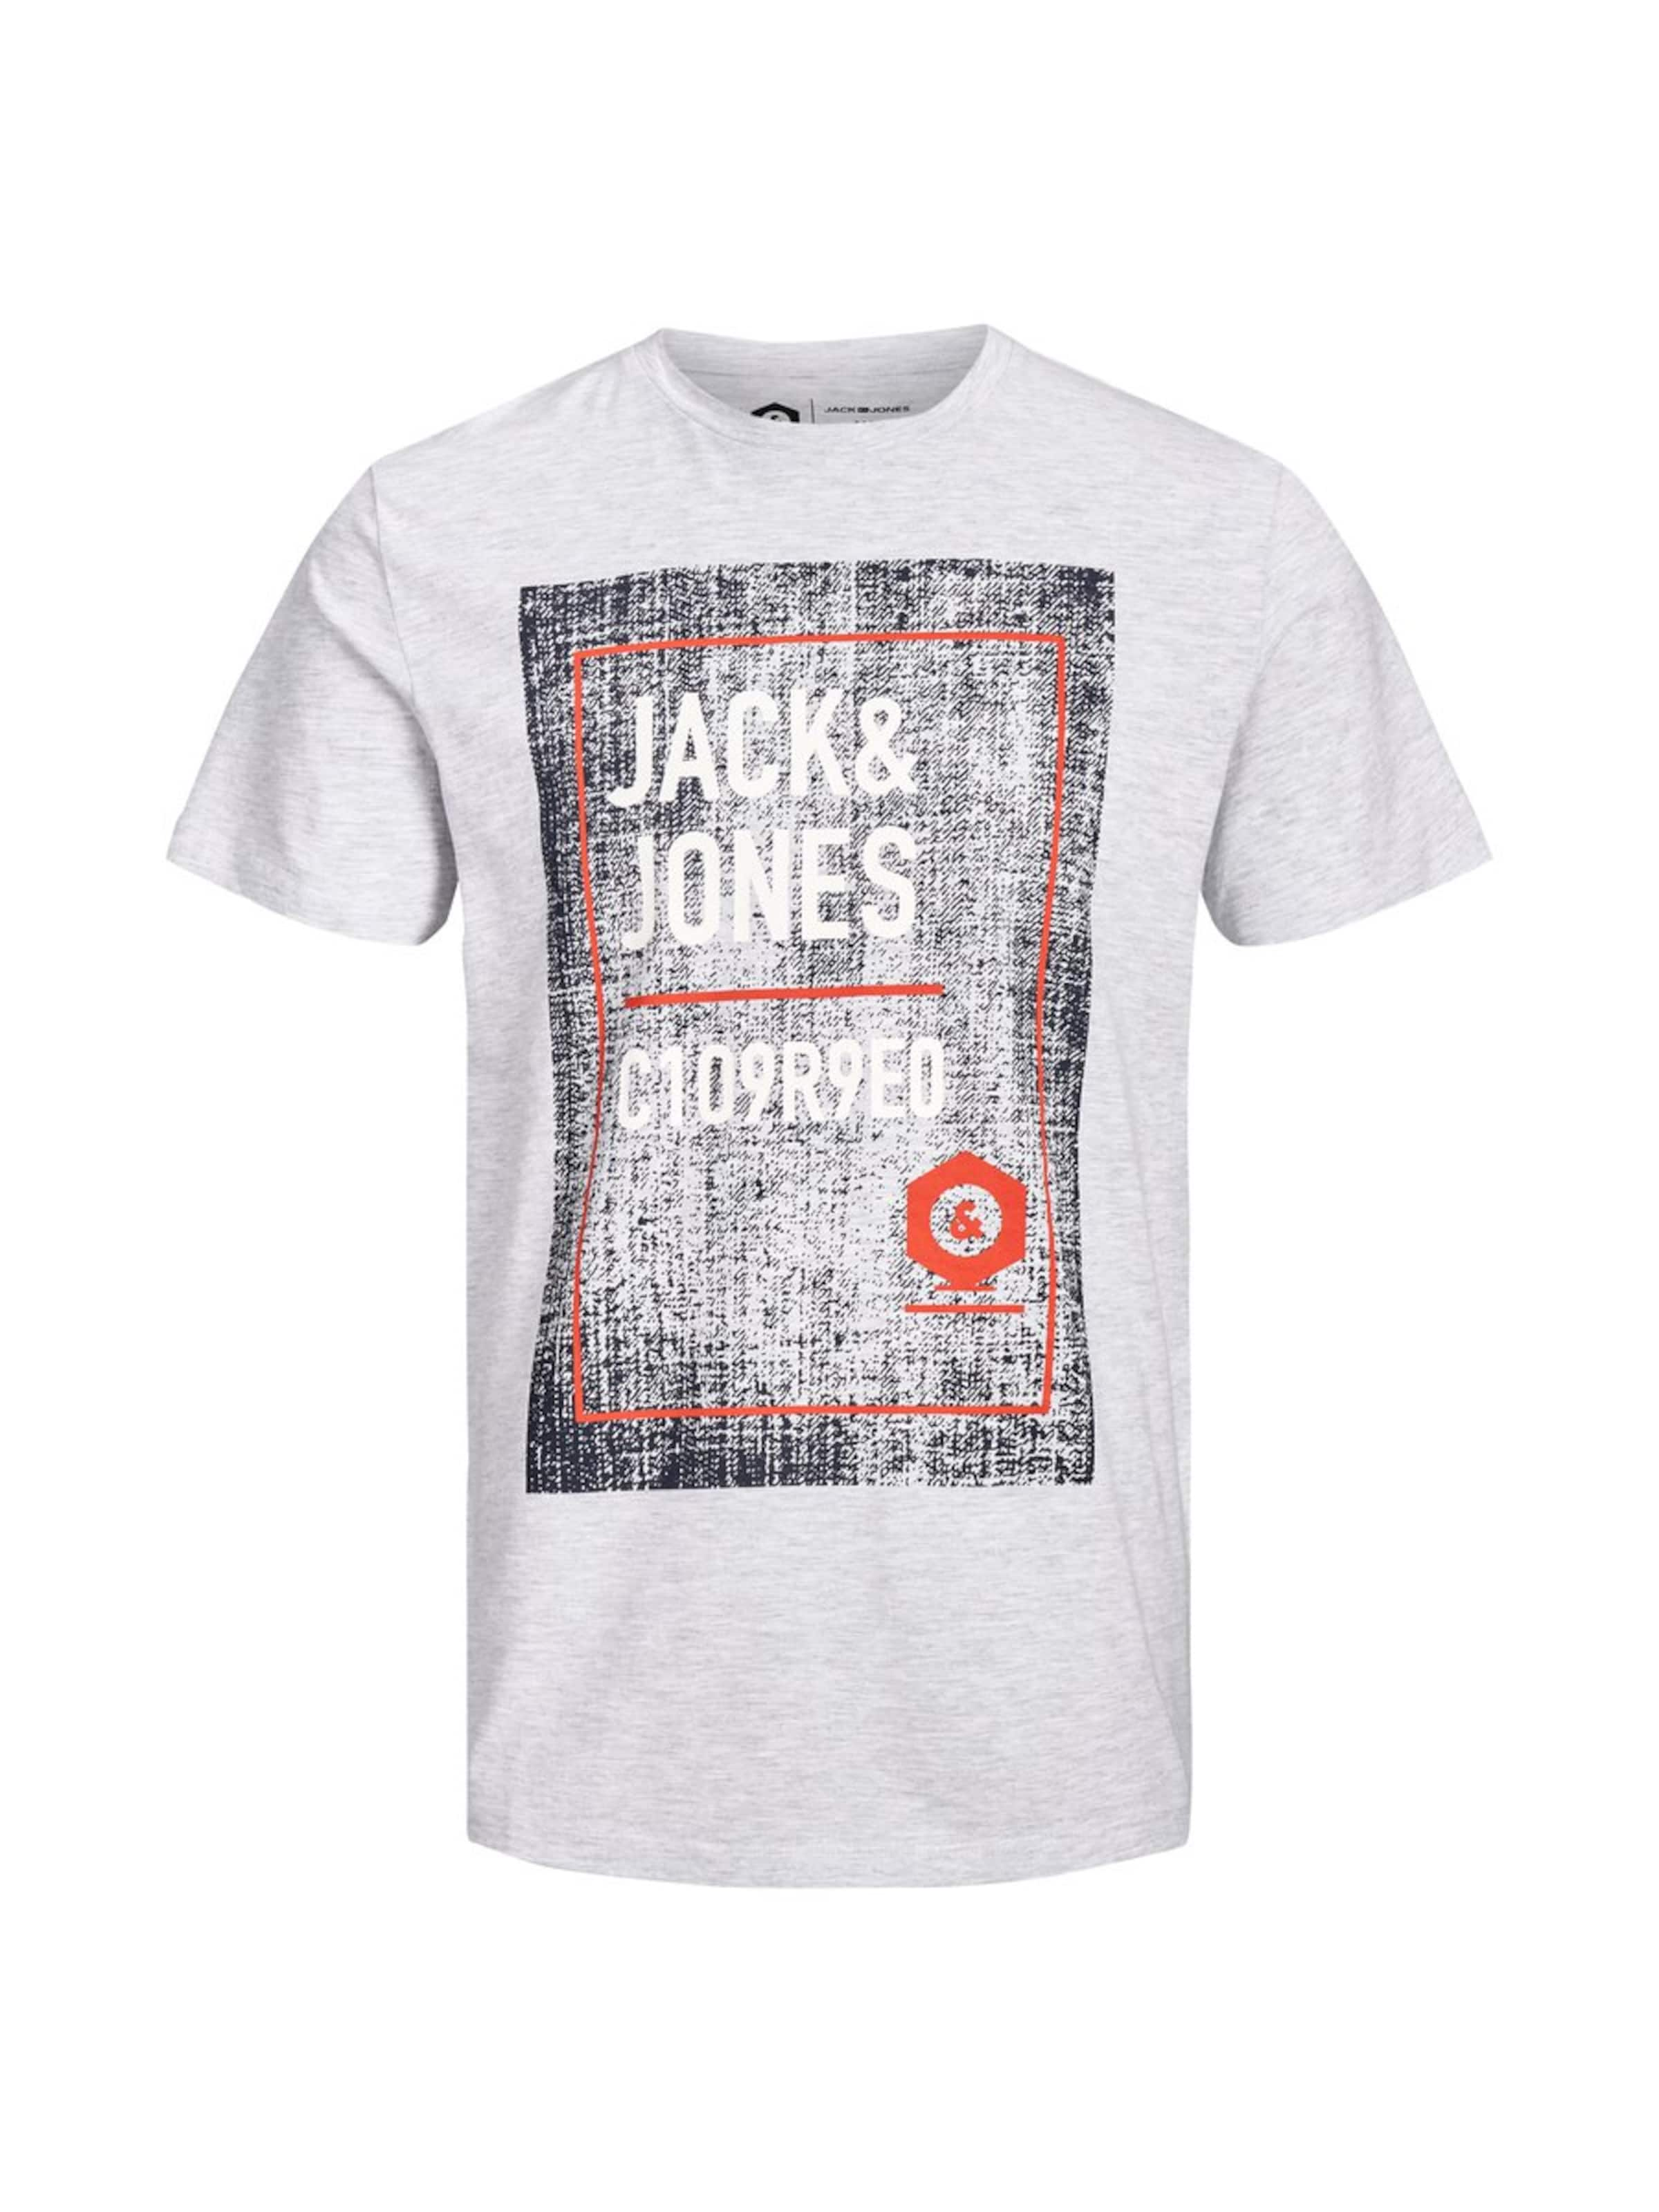 Gris T shirt Jackamp; Jones En ChinéBlanc EWD29HIY